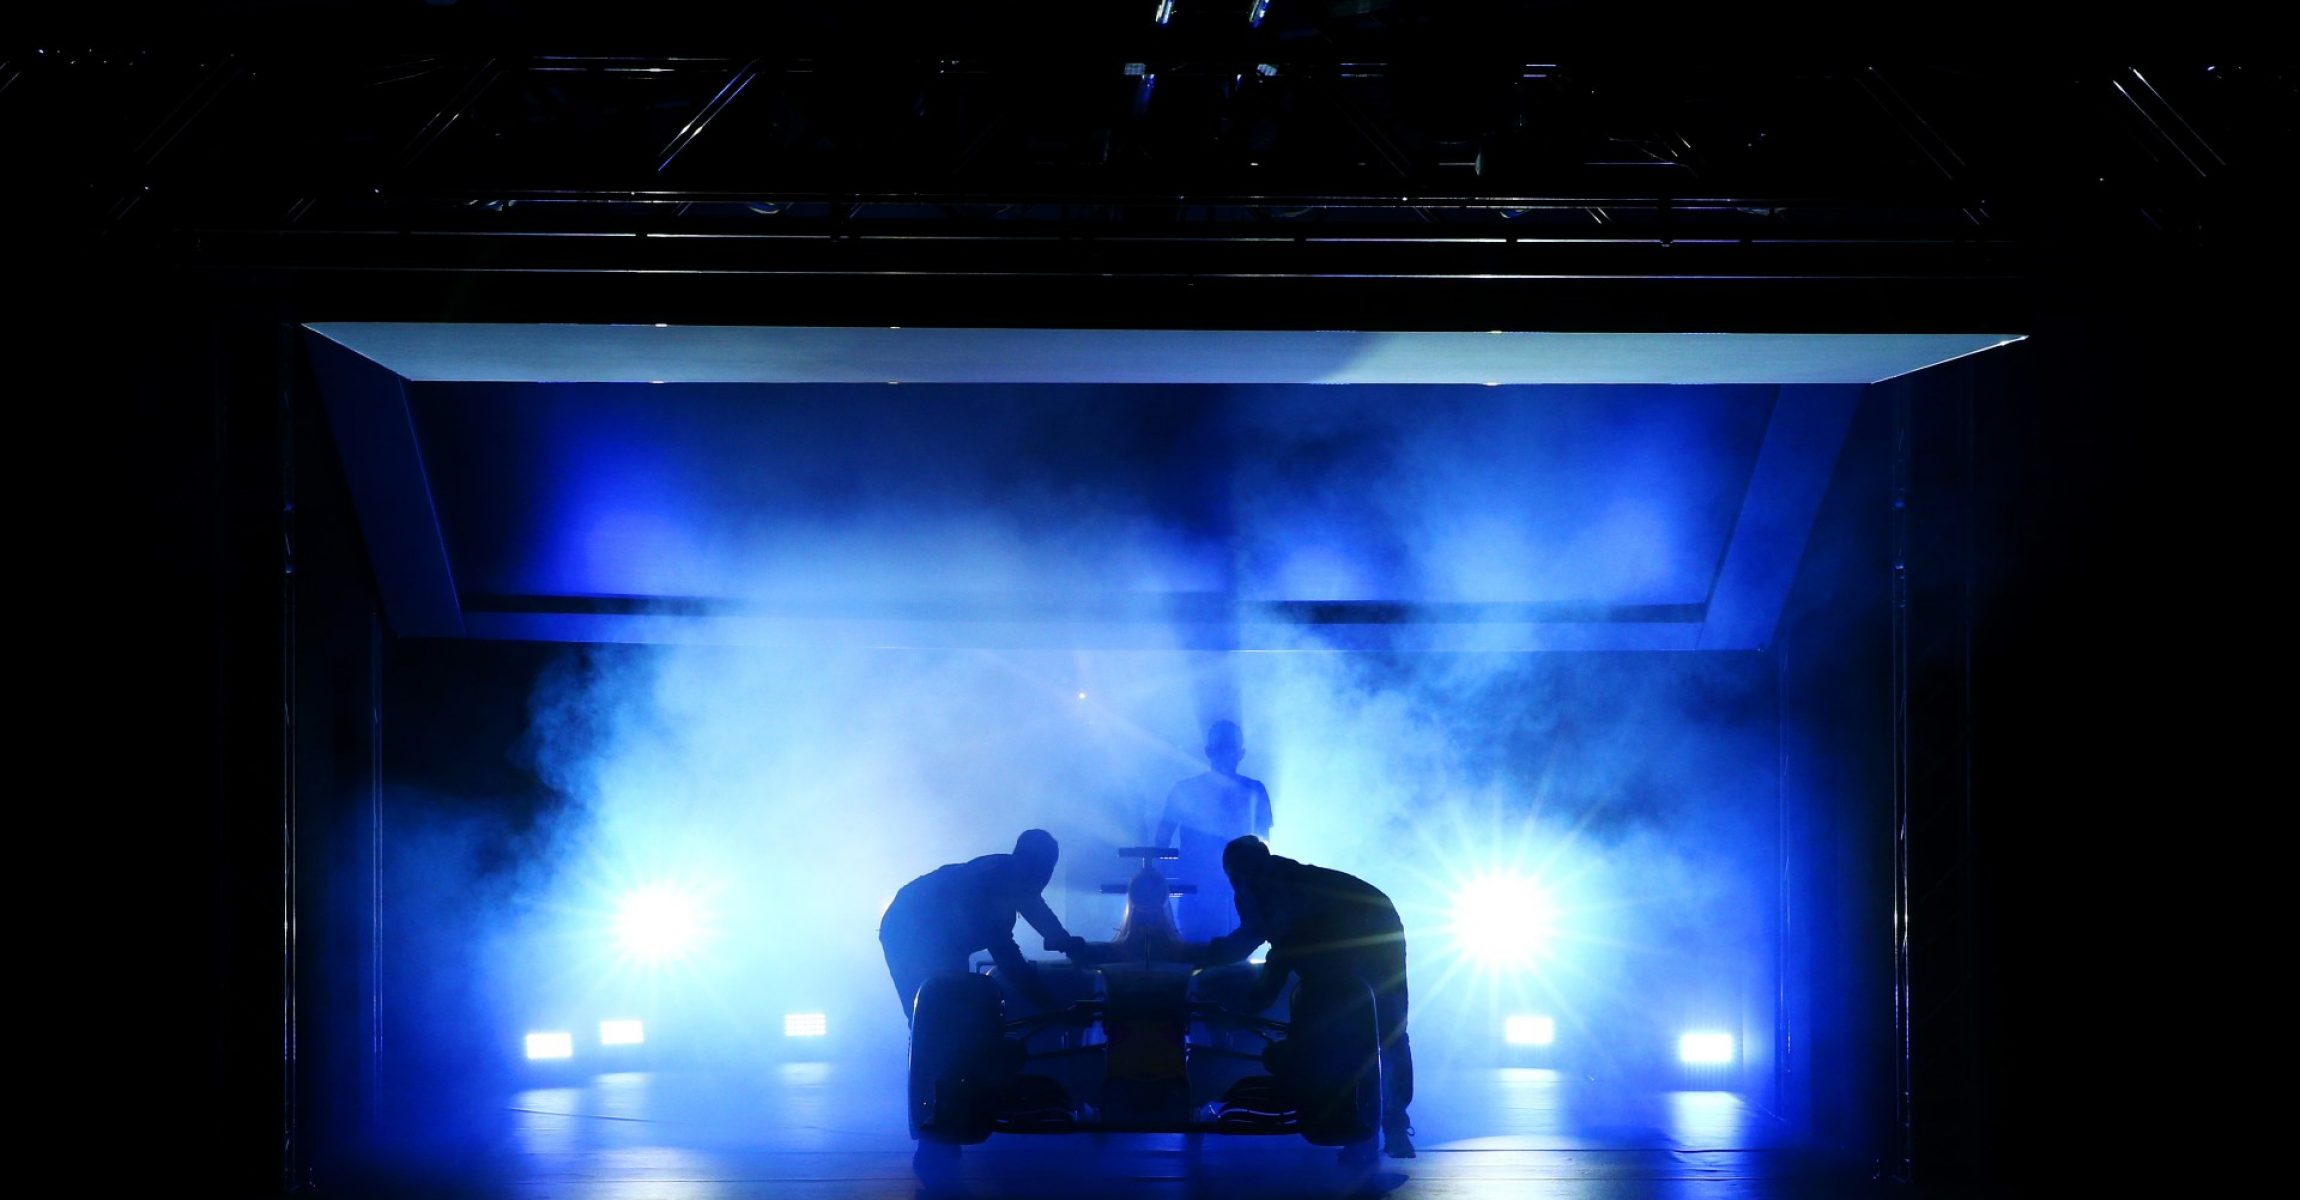 LONDON, ENGLAND - FEBRUARY 17:  The RB11 featuring the 2016 livery is unveiled during the launch event for PUMA and Red Bull Racing's 2016 Livery and Teamwear at Old Truman Brewery on February 17, 2016 in London, England.  (Photo by Clive Mason/Getty Images), launch, presentation,